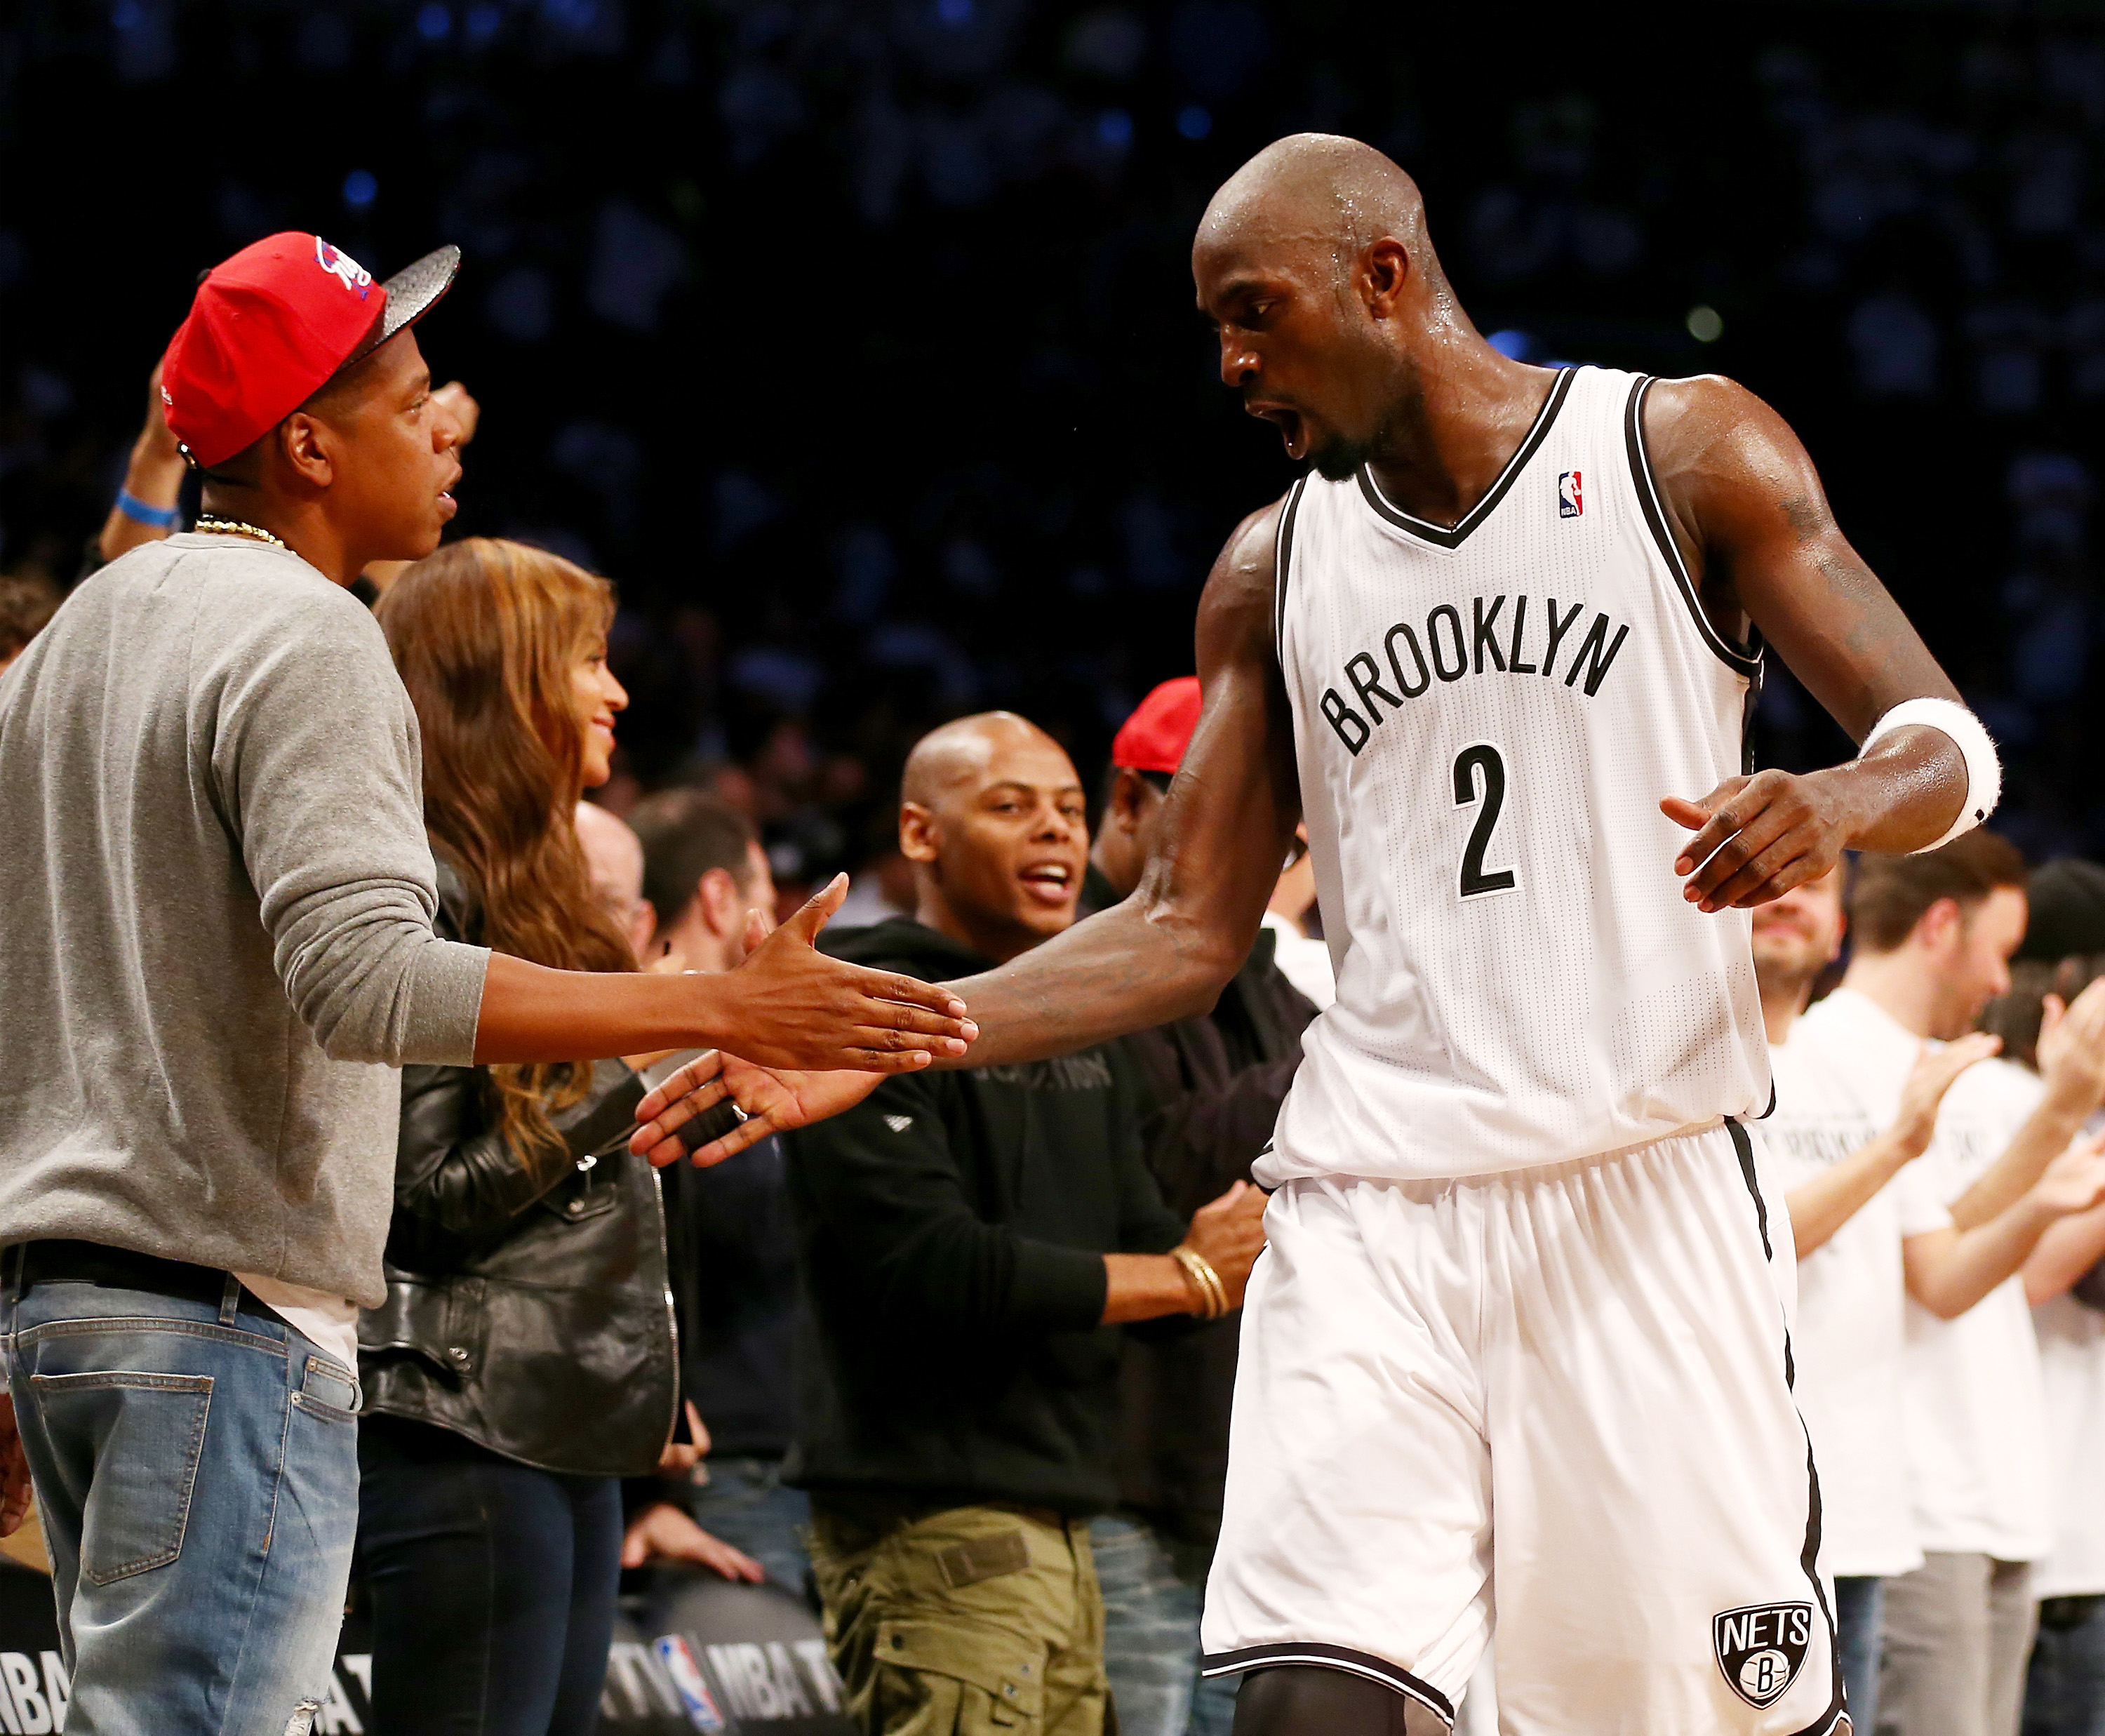 Kevin Garnett Believes He 'Set a Precedent' for Jay-Z and Puma When He Returned to AND1